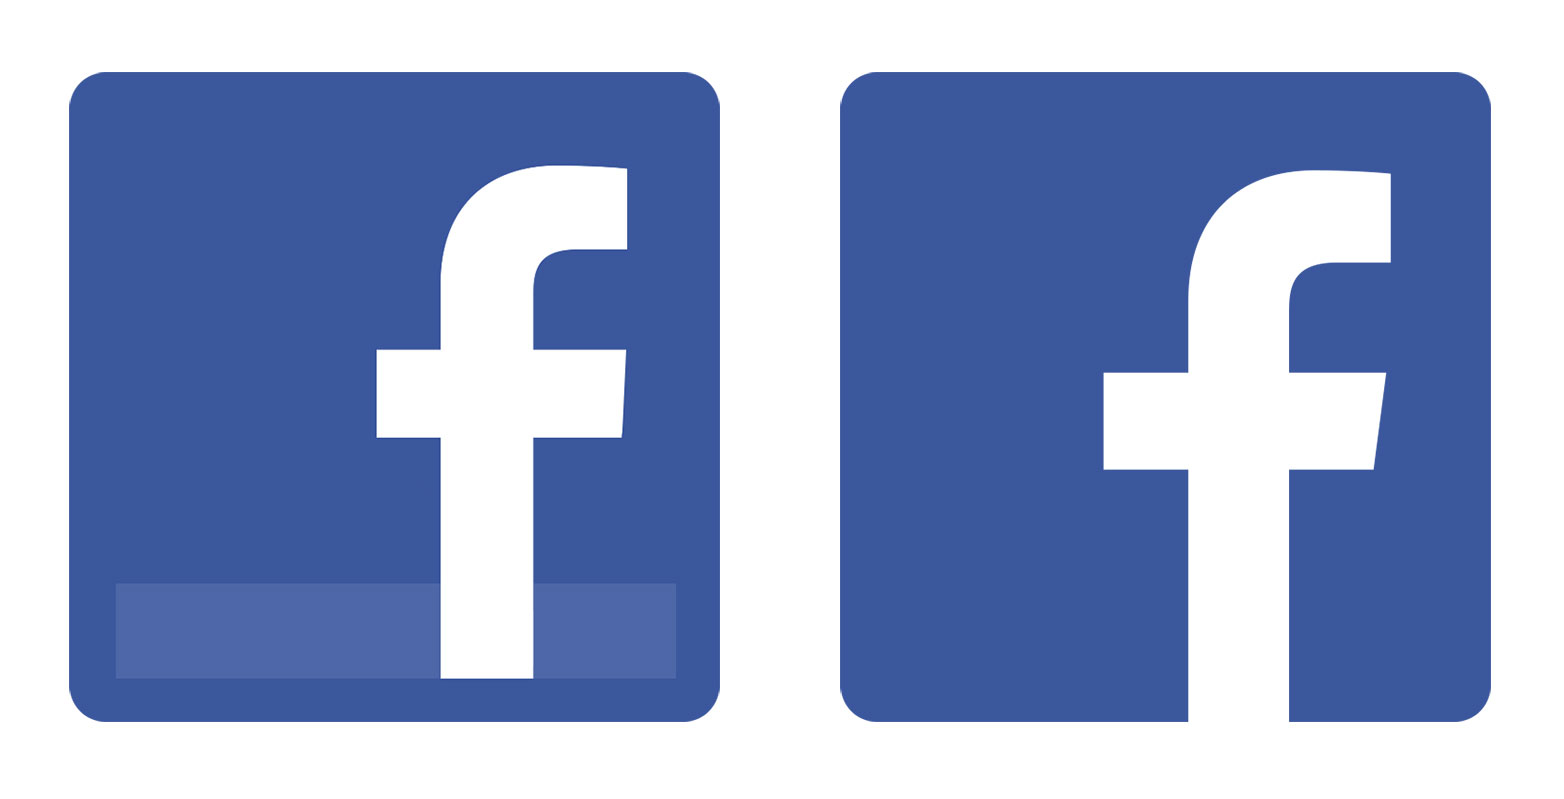 10 New Facebook Icon Images